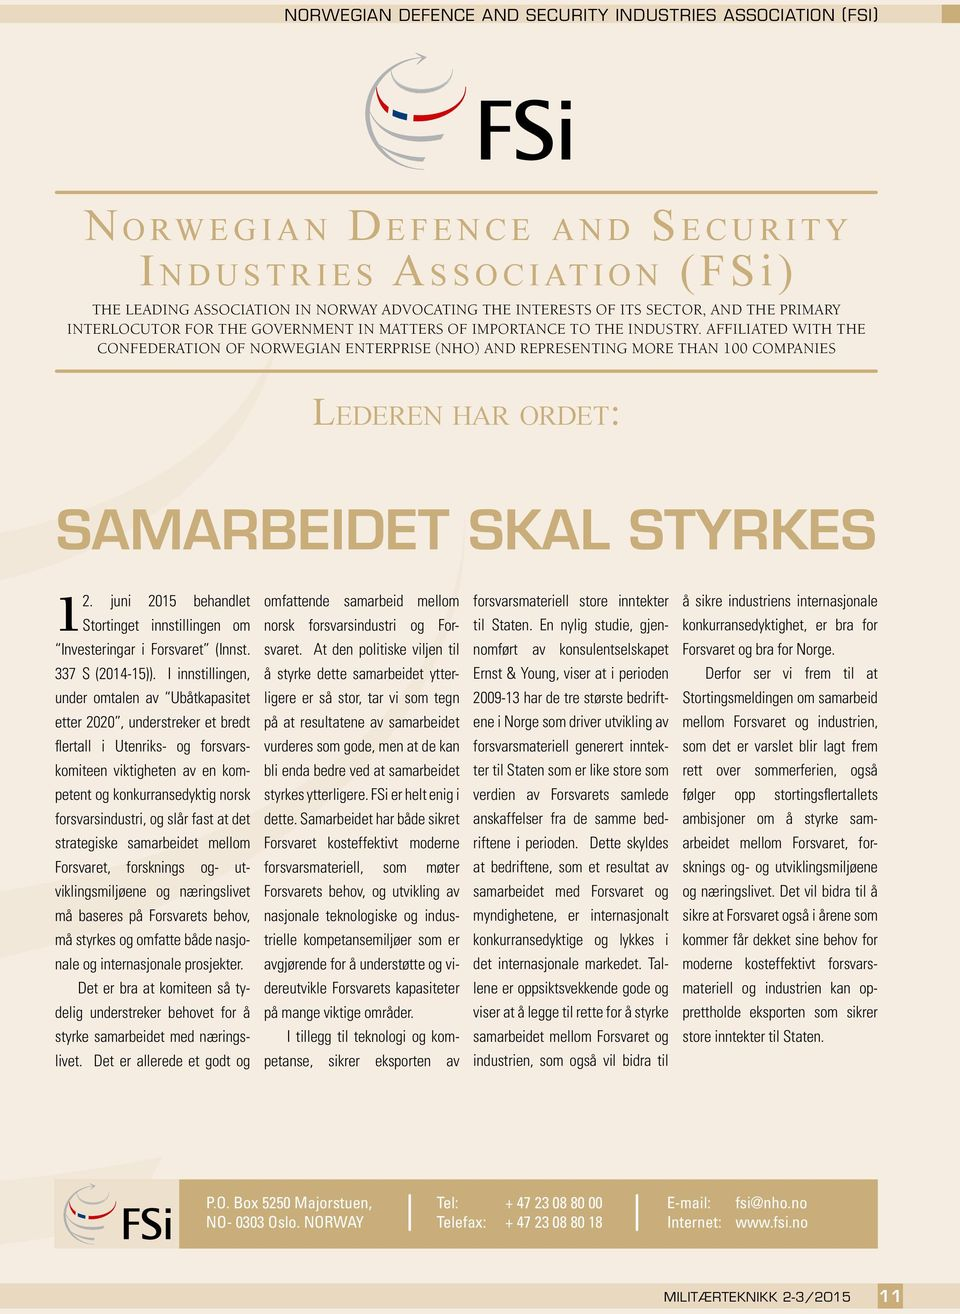 AFFILIATED WITH THE CONFEDERATION OF NORWEGIAN ENTERPRISE (NHO) AND REPRESENTING MORE THAN 100 COMPANIES Lederen har ordet: SAMARBEIDET SKAL STYRKES 12.